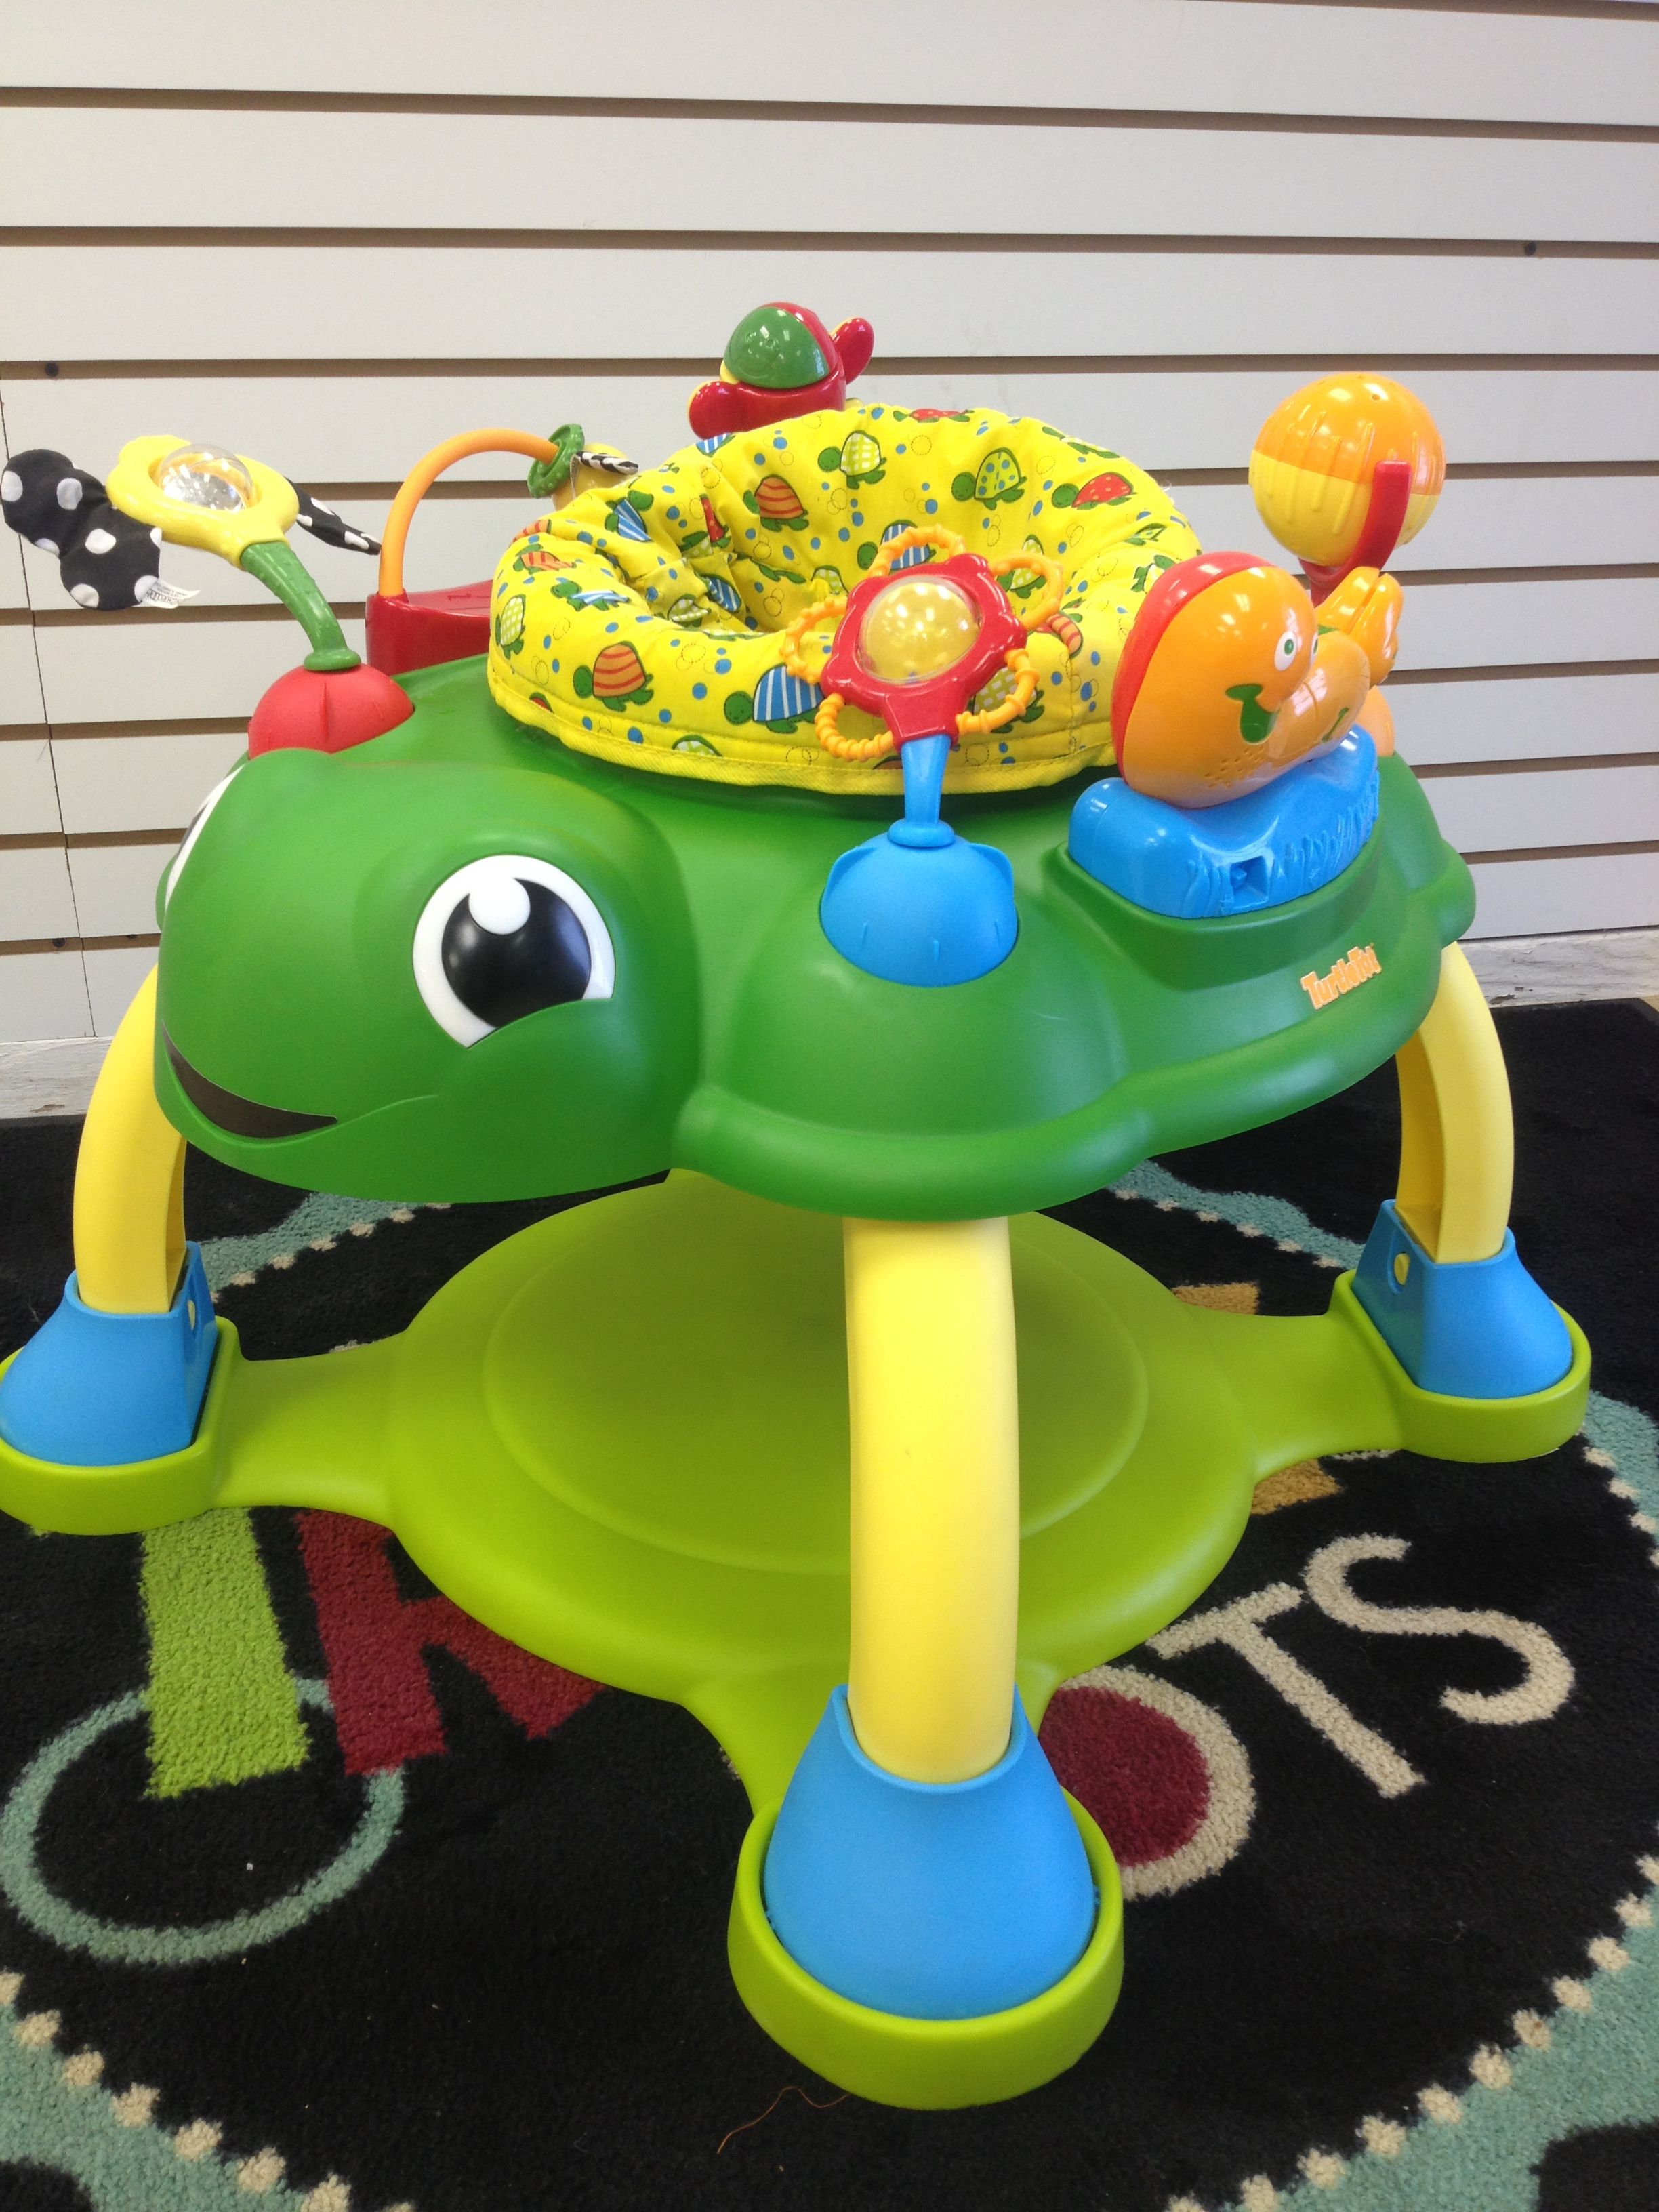 Kolcraft Turtletot Activity Center 29 99 Twice Trendy